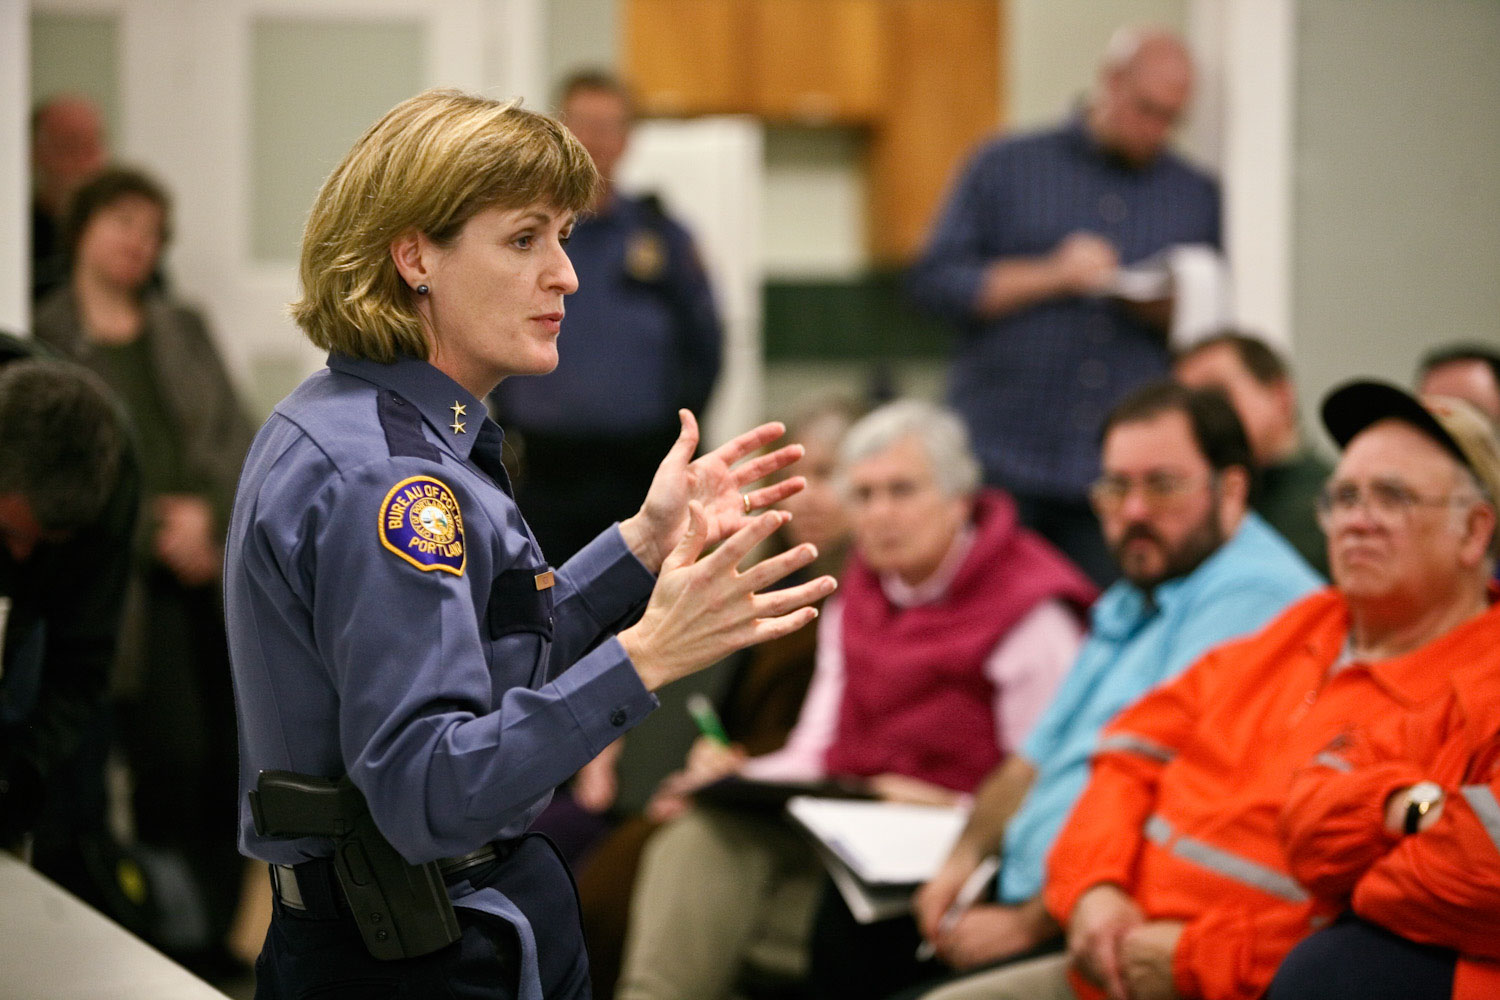 Portland police chief Rosie Sizer talks at town hall meeting about the closure of N Portland Precinct